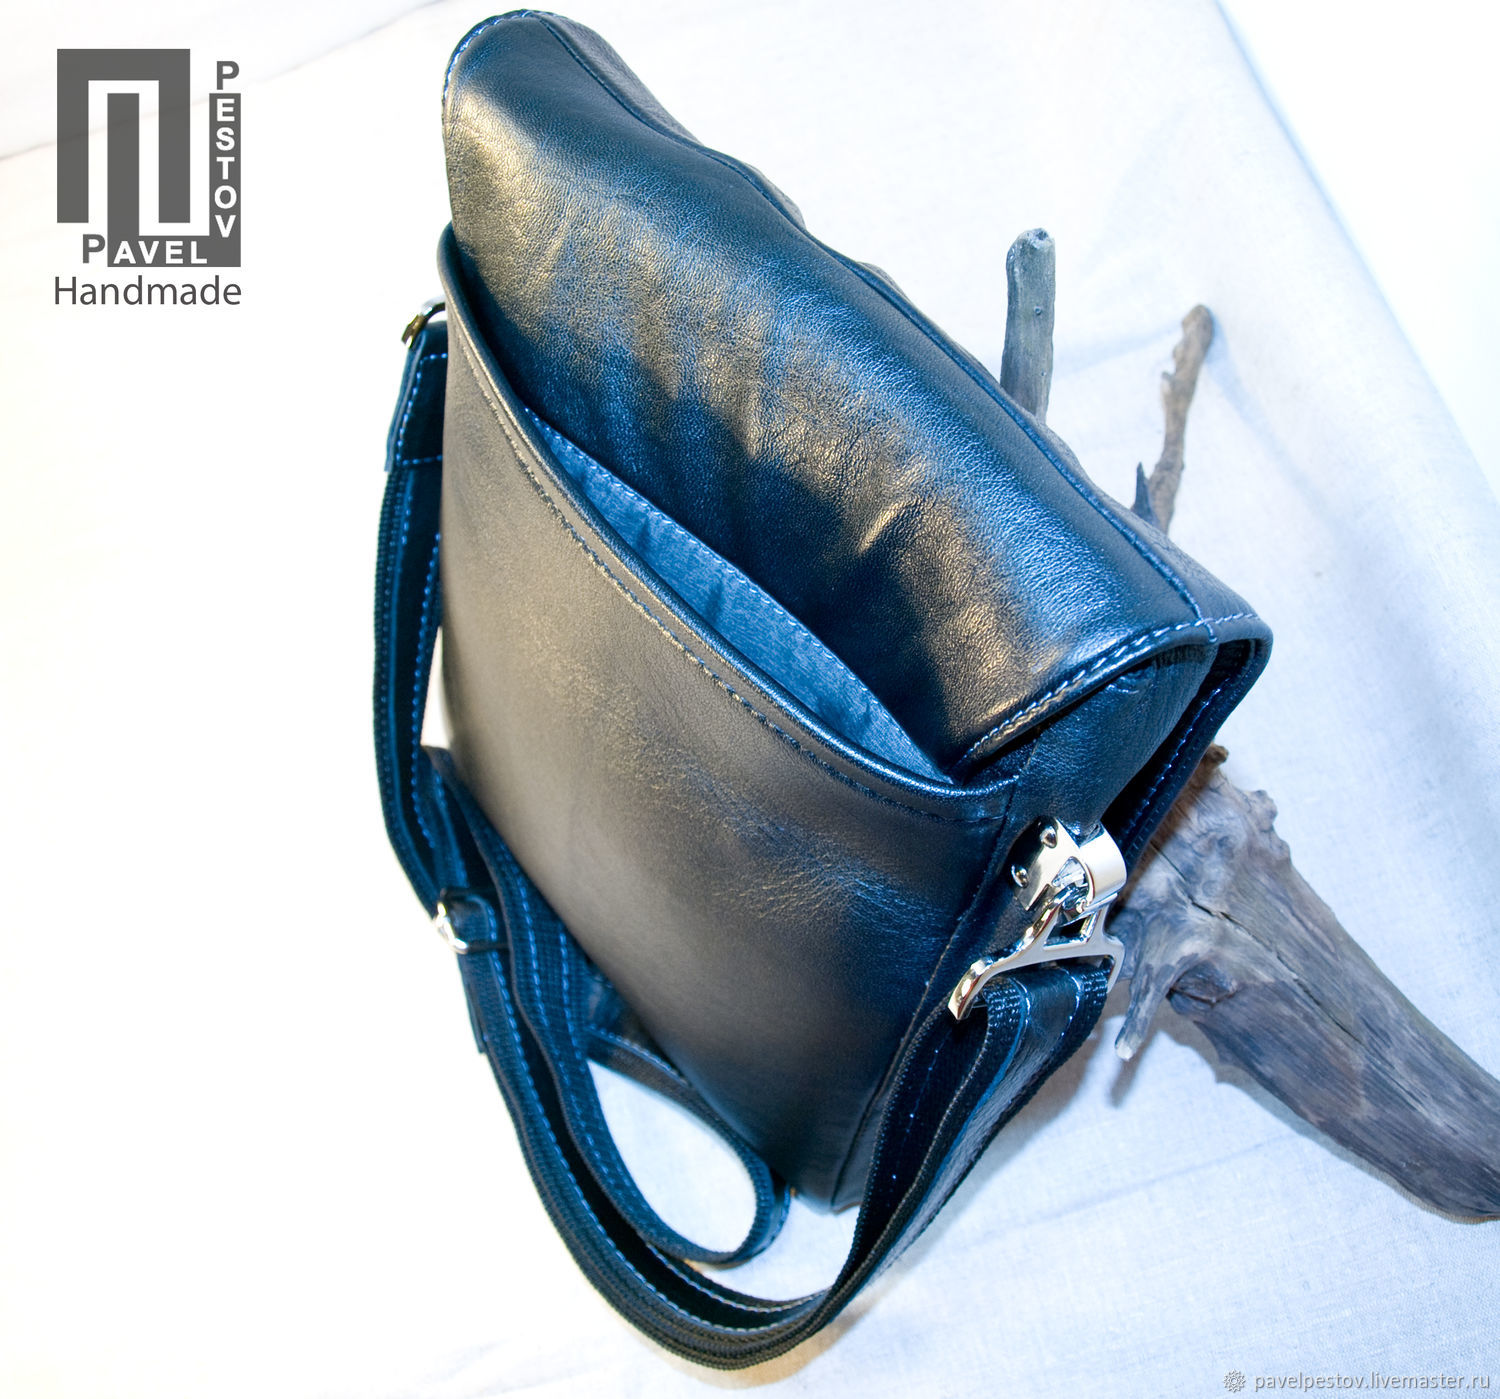 6319400d0782 Men s Bags handmade. men s bag (tablet). Pavel Pestov - Handmade.